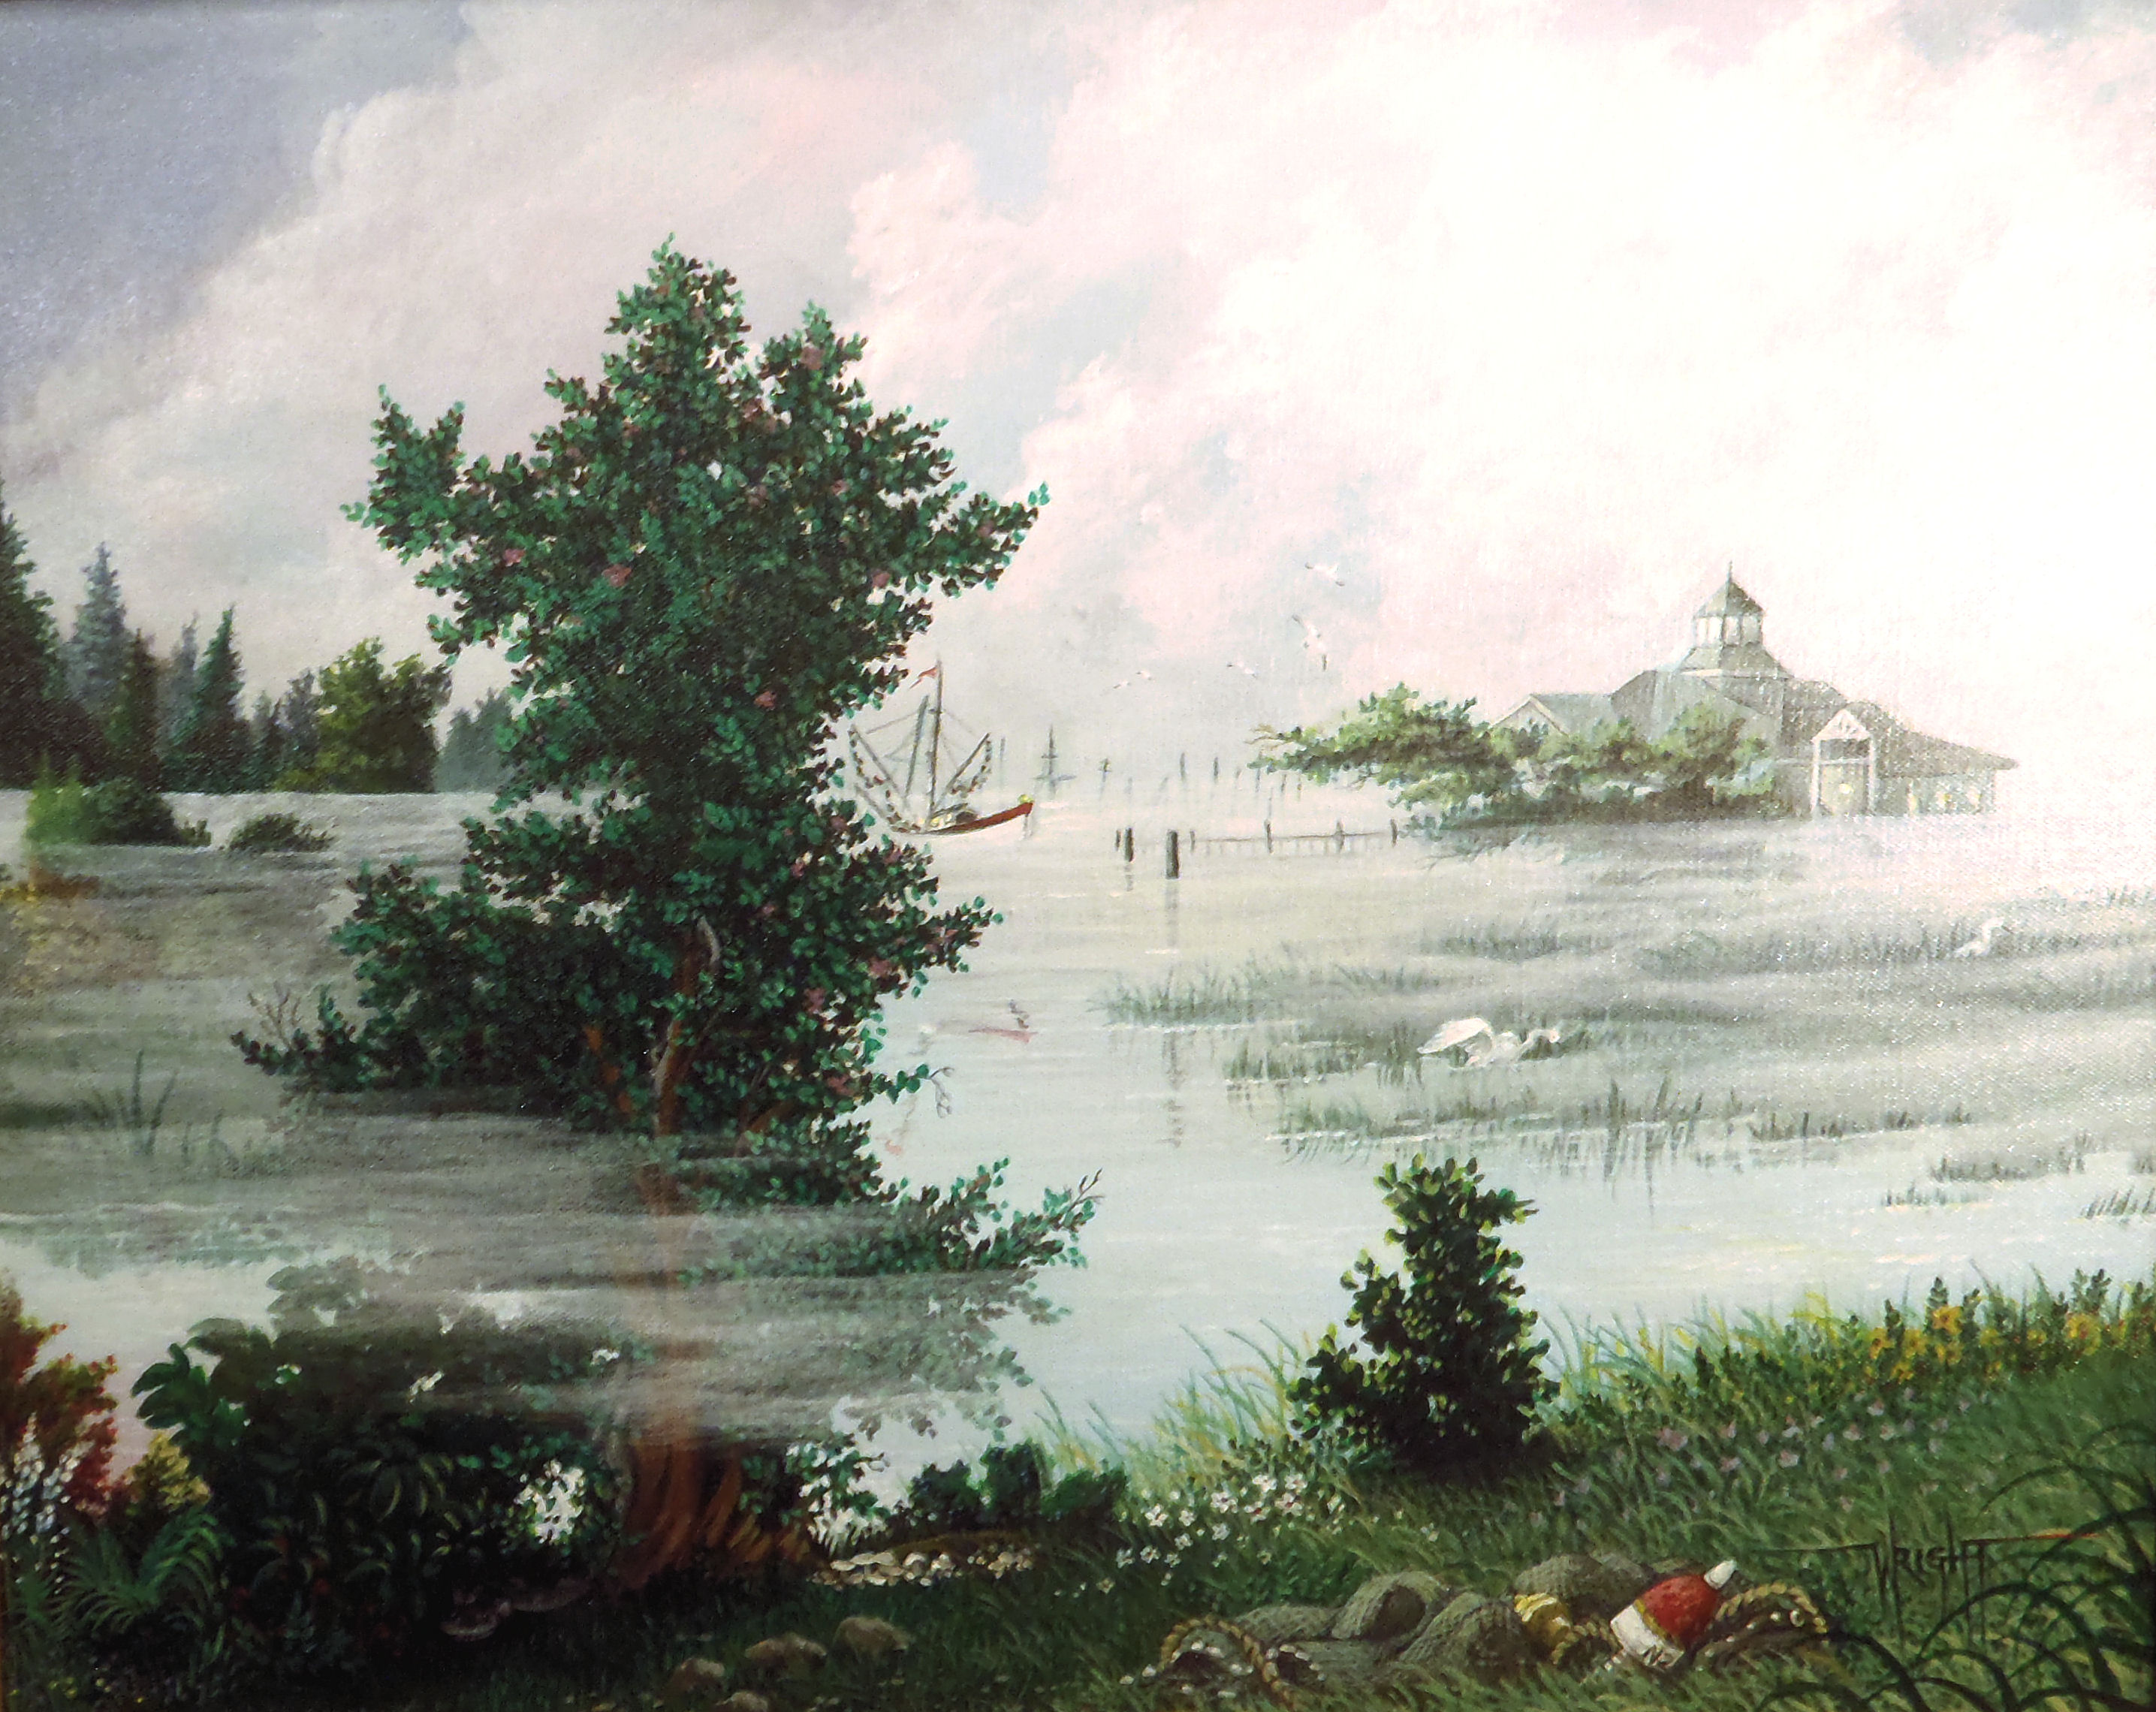 Painting of Murrells Inlet SC